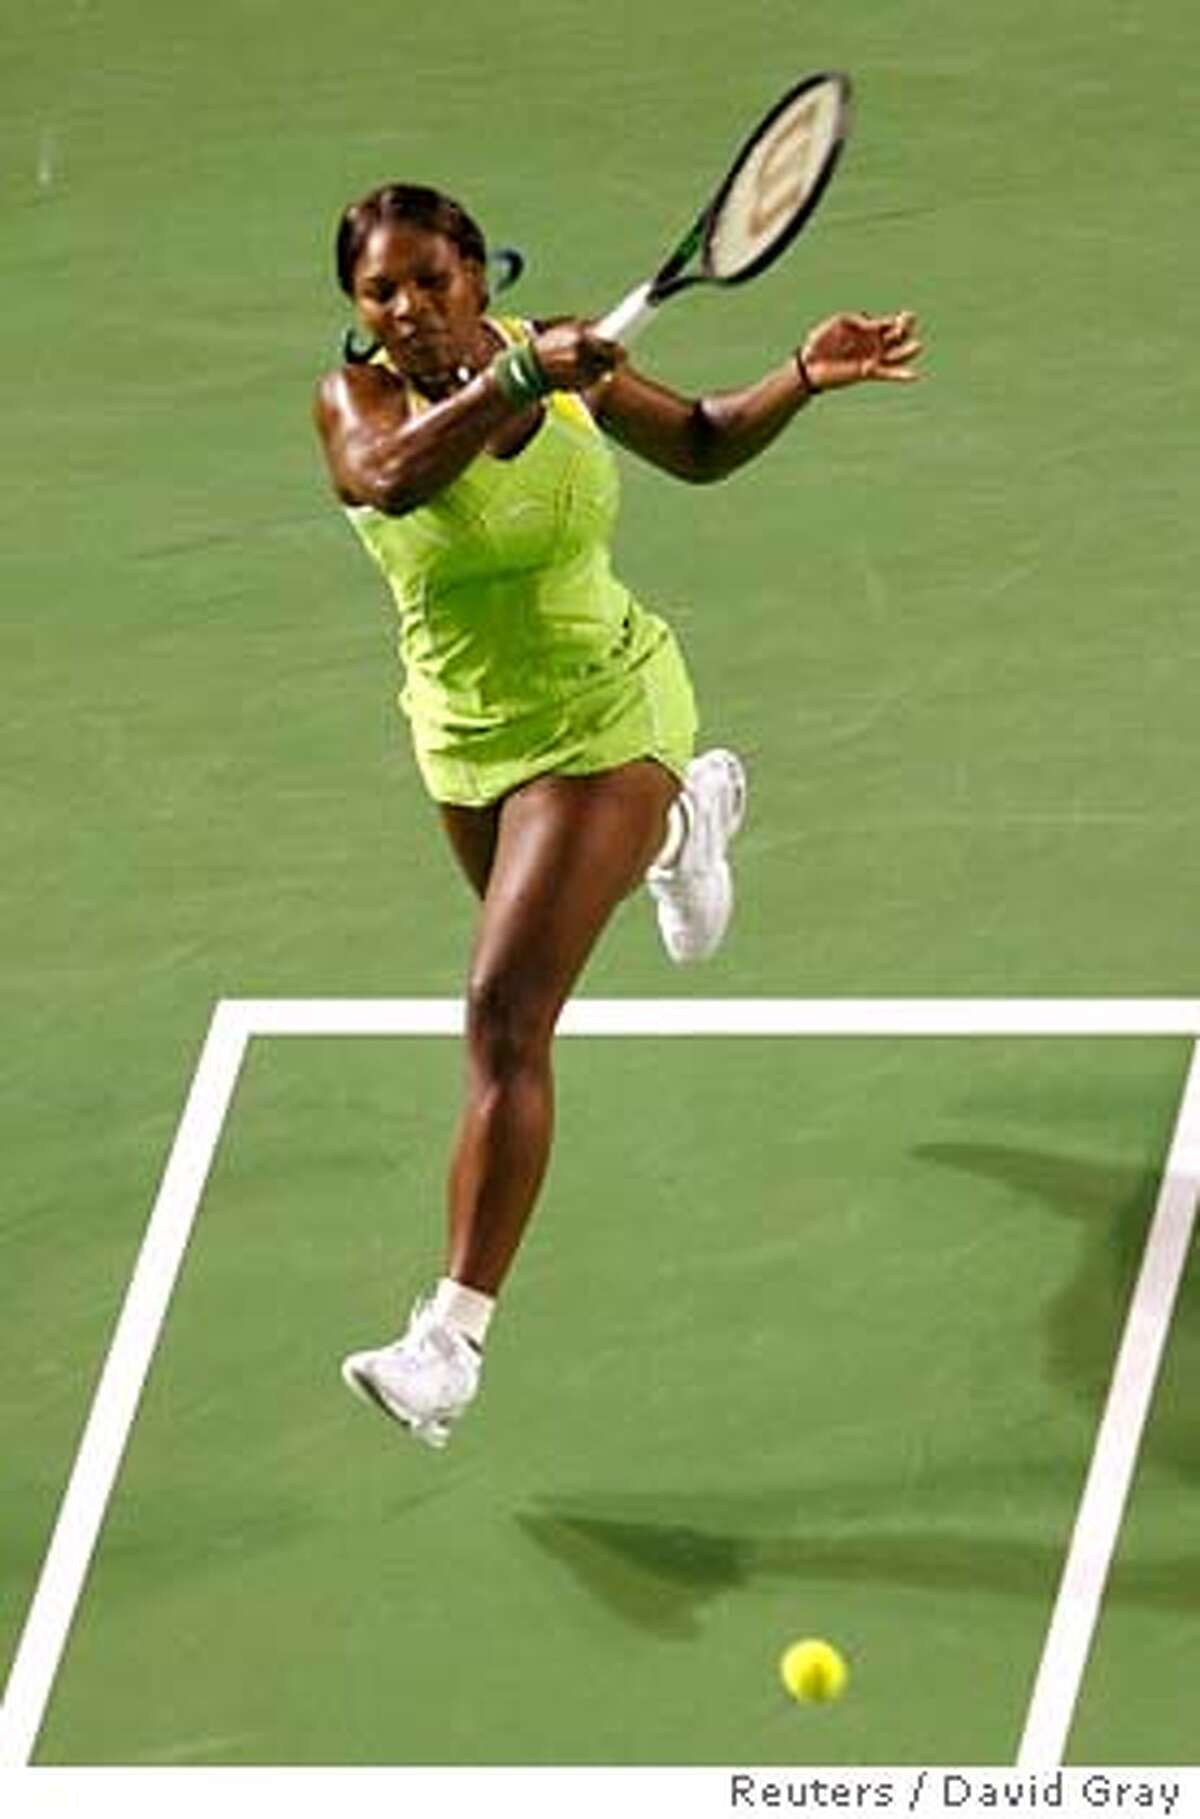 Serena Williams of the U.S. hits a shot during the women's final match against Russia's Maria Sharapova at the Australian Open tennis tournament in Melbourne January 27, 2007. REUTERS/David Gray (AUSTRALIA)